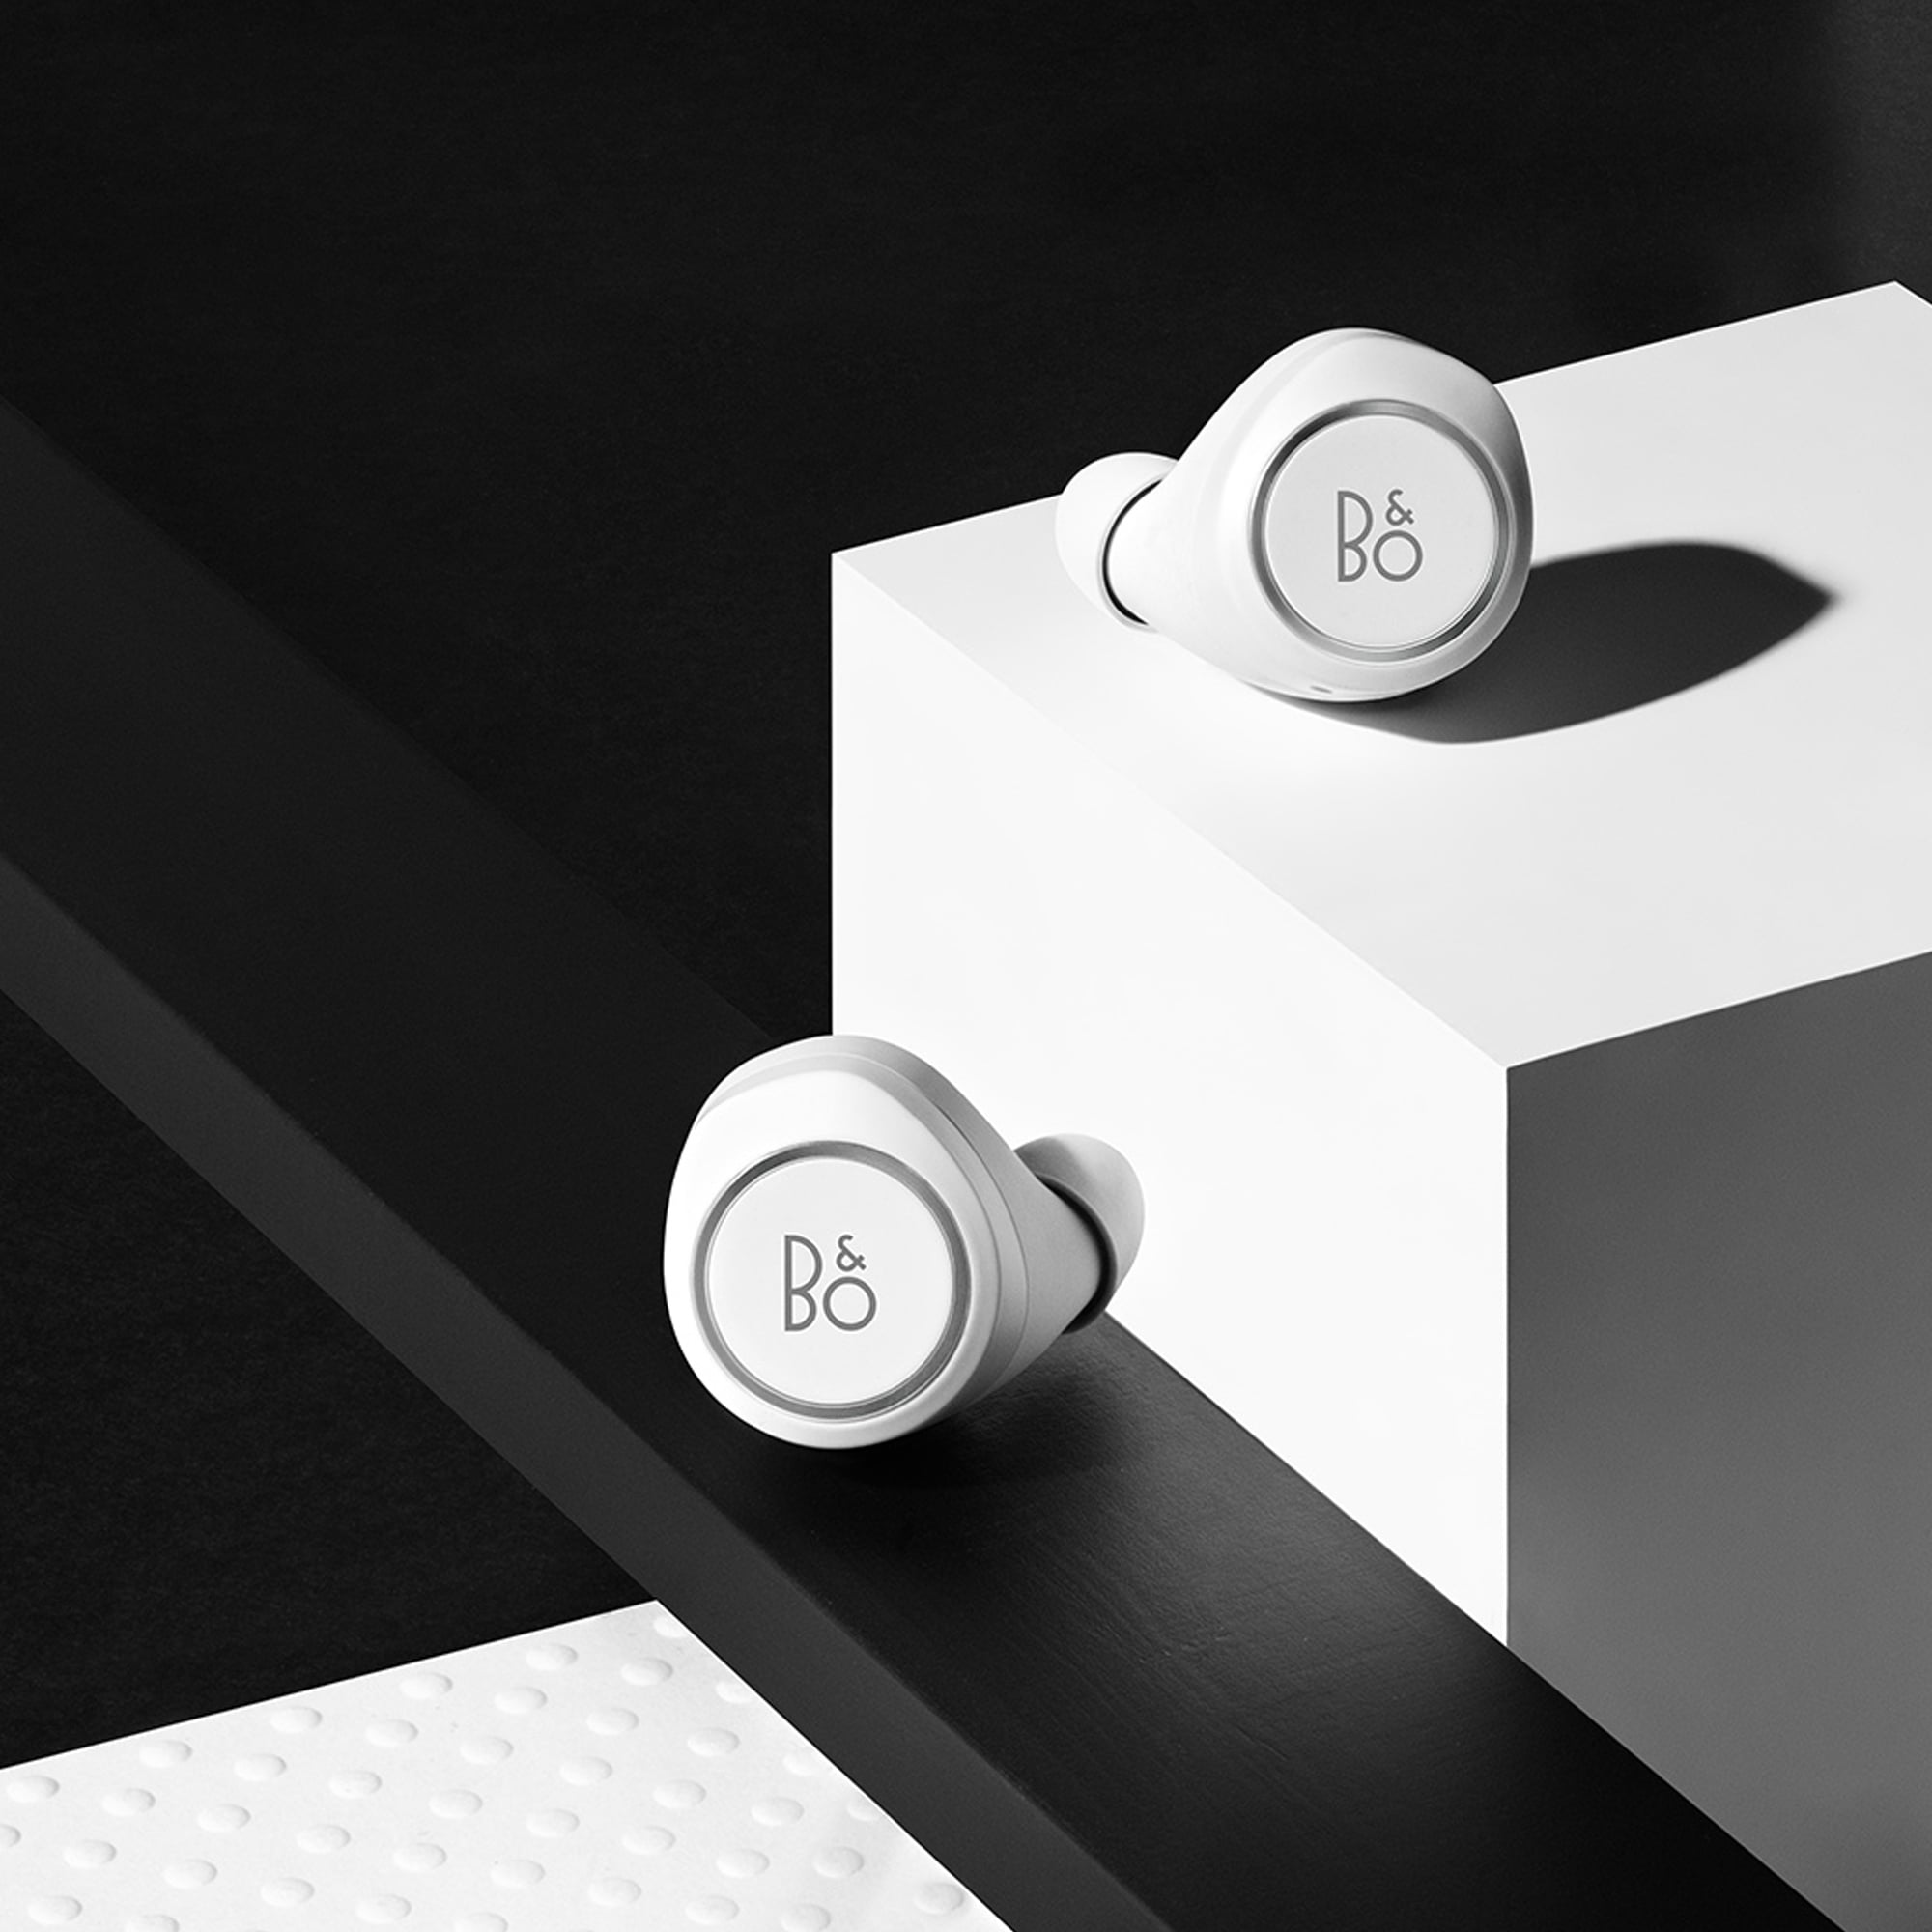 bang and olufsen e8 headset all white e8 truly wireless inear headphones beoplay bo1644132